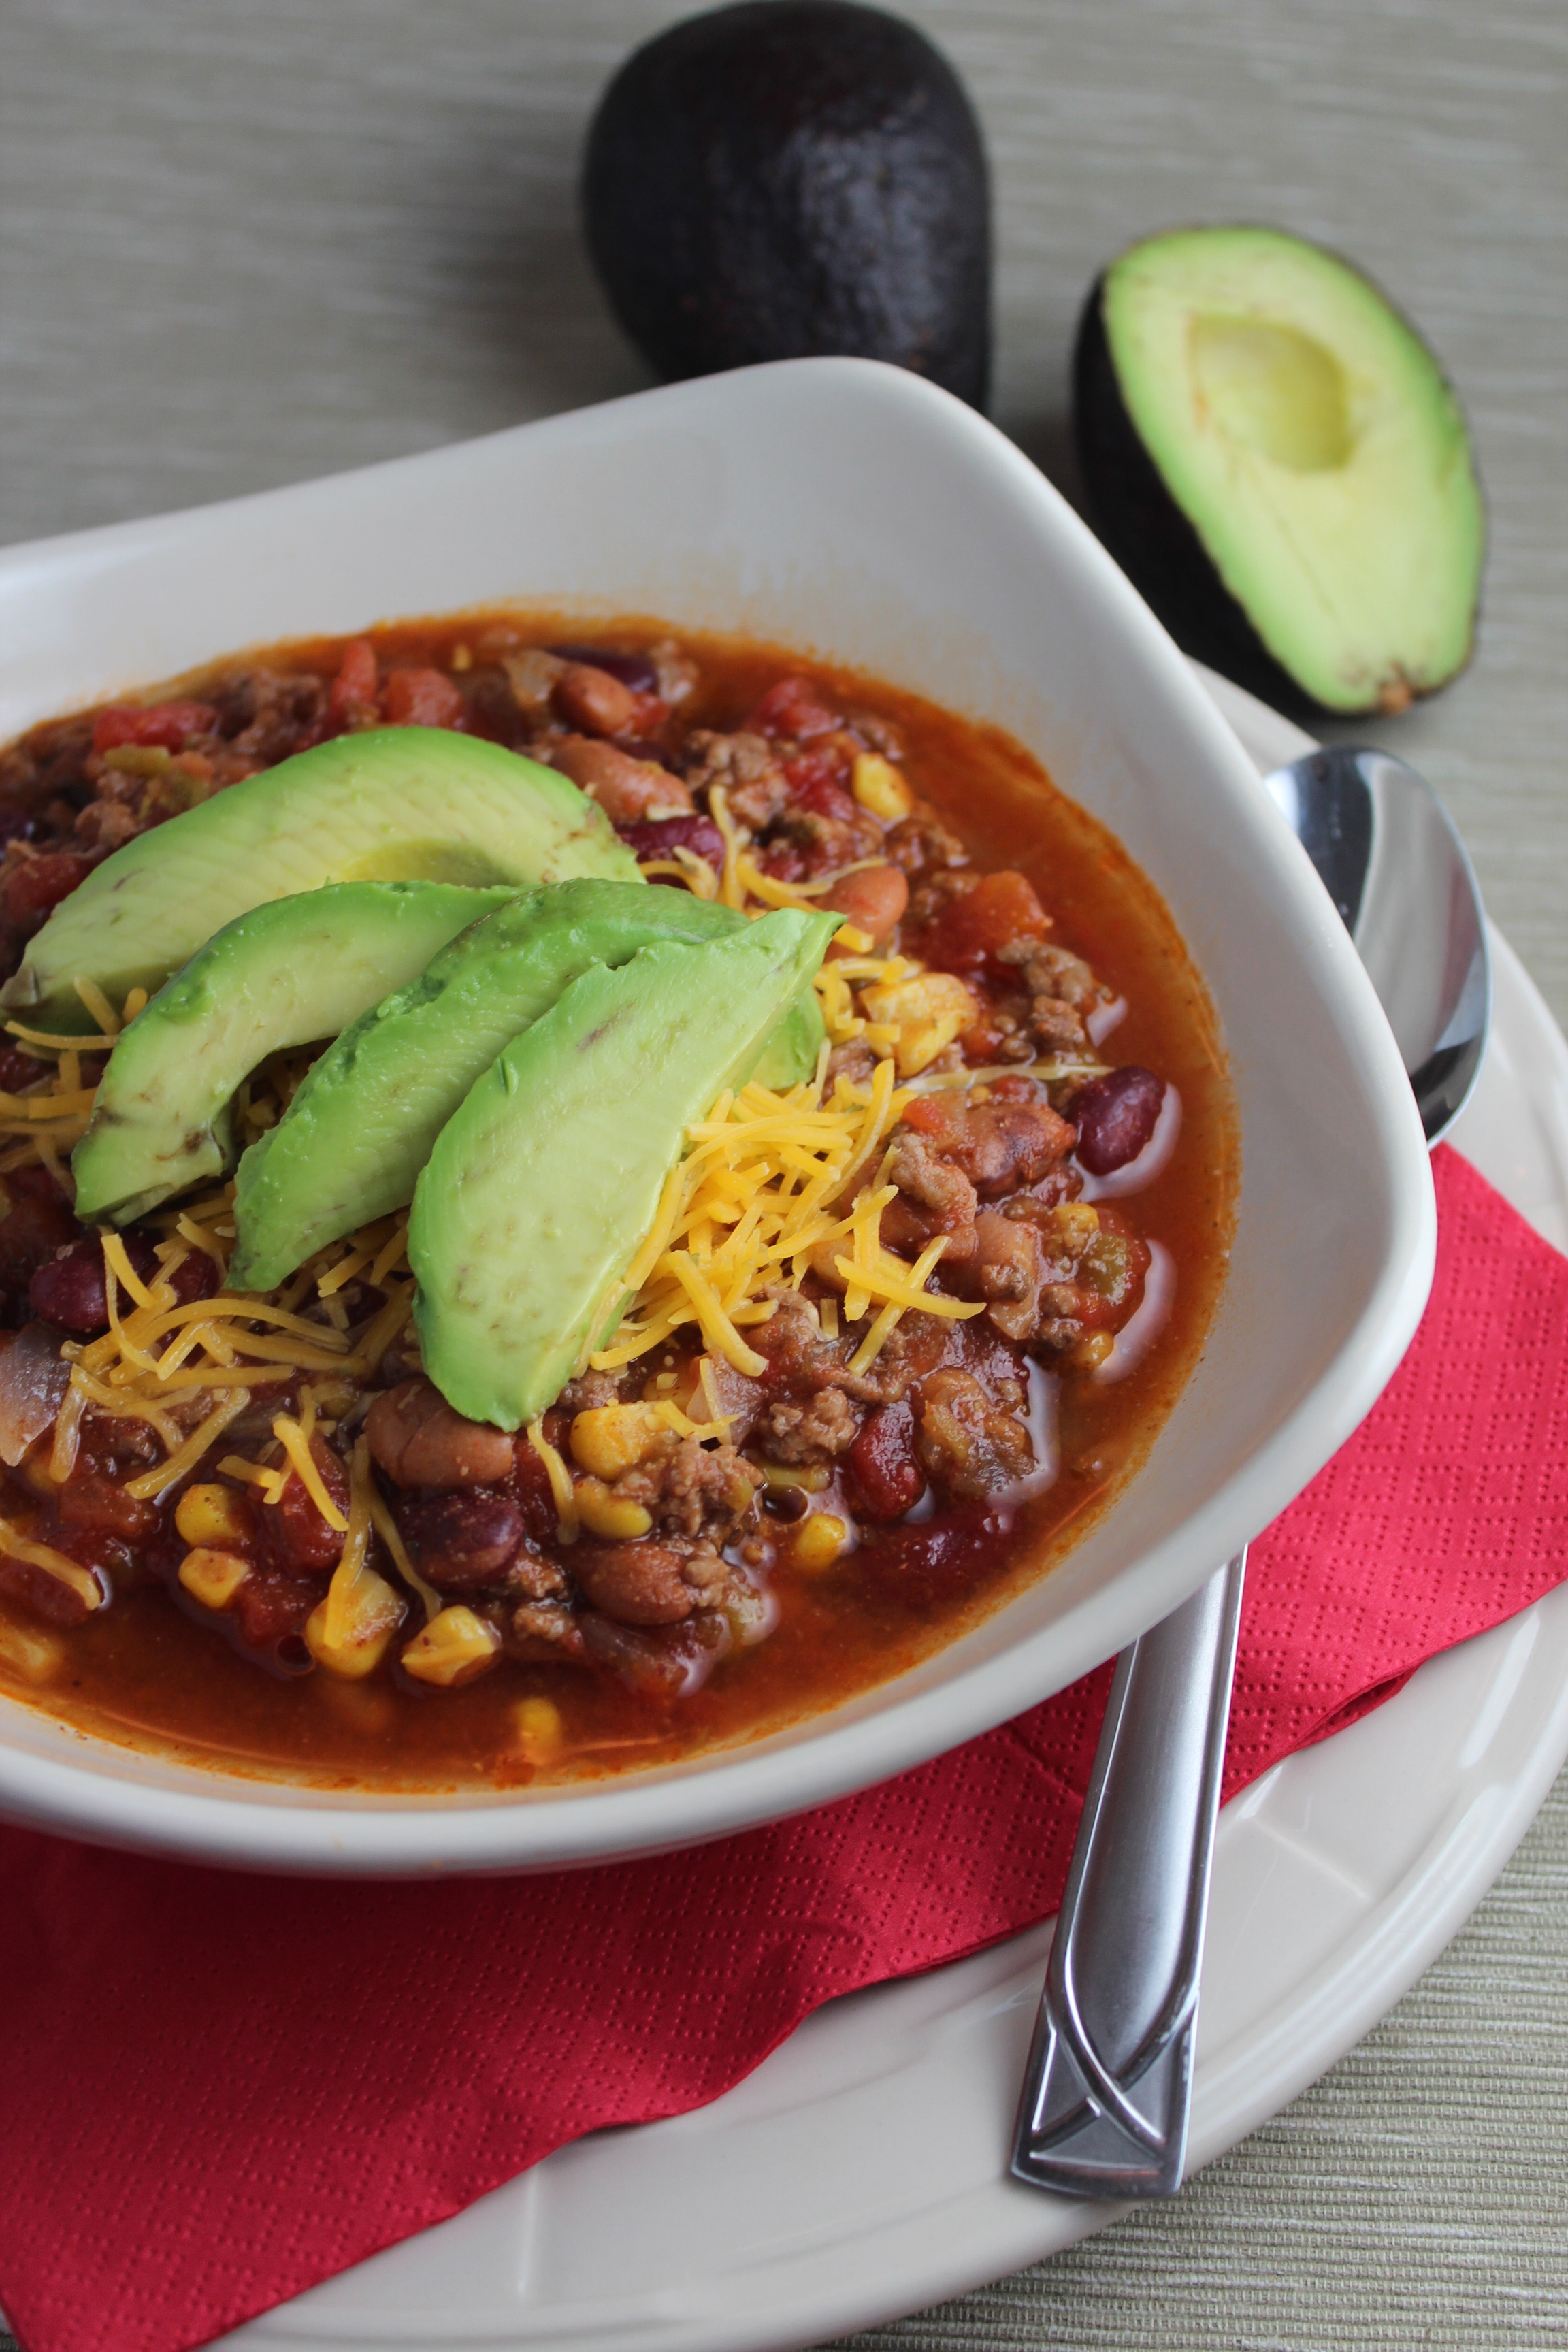 Avocado and Cheddar Topped Taco Soup